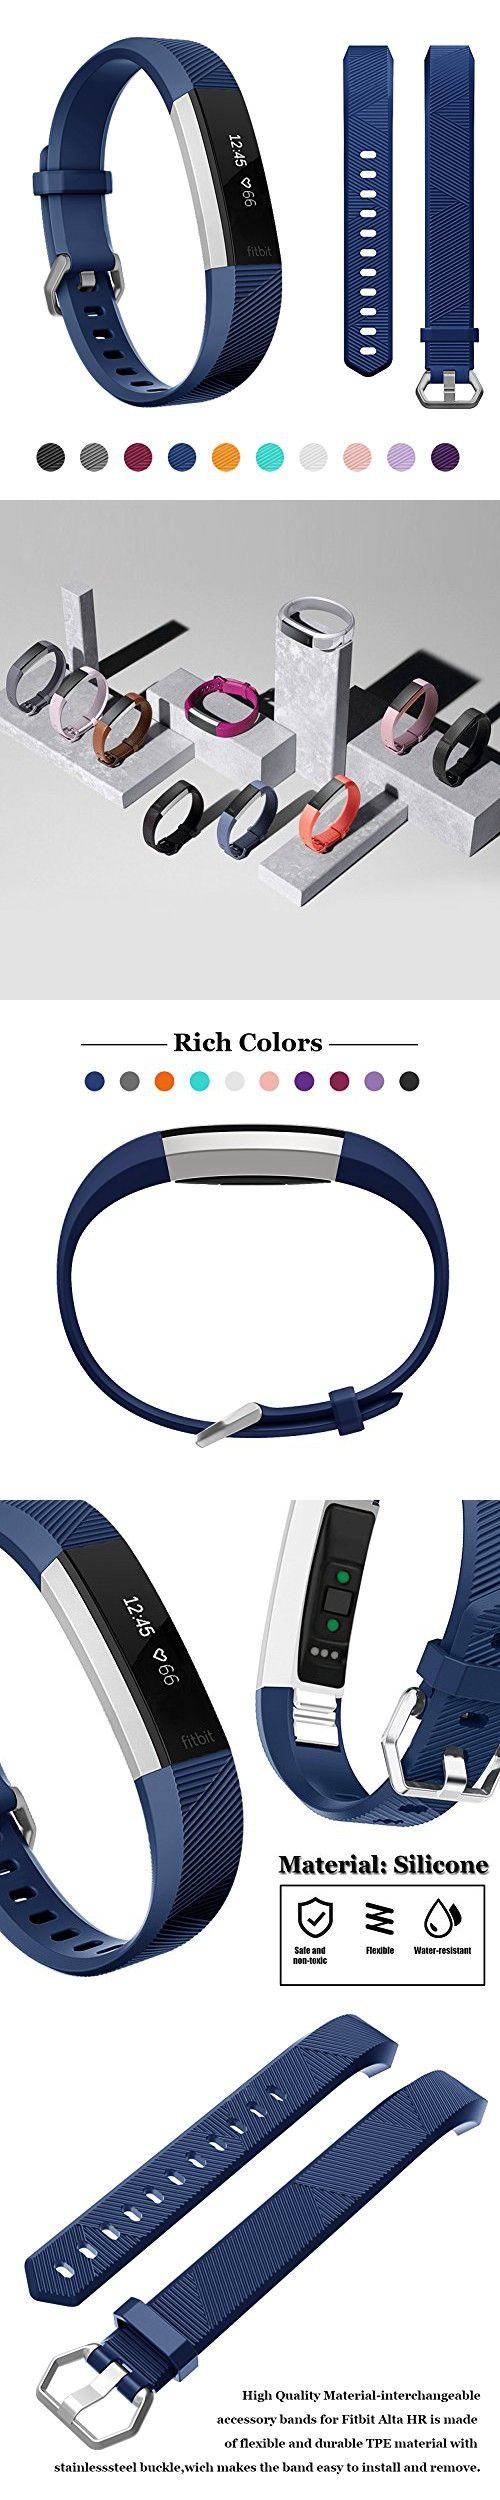 Fitbit Alta Band, Fitbit Alta Hr Band, Kutop Silicone Adjustable Strap Sports Fitness Watchband for Fitbit Alta HR/Fitbit Alta Wristband